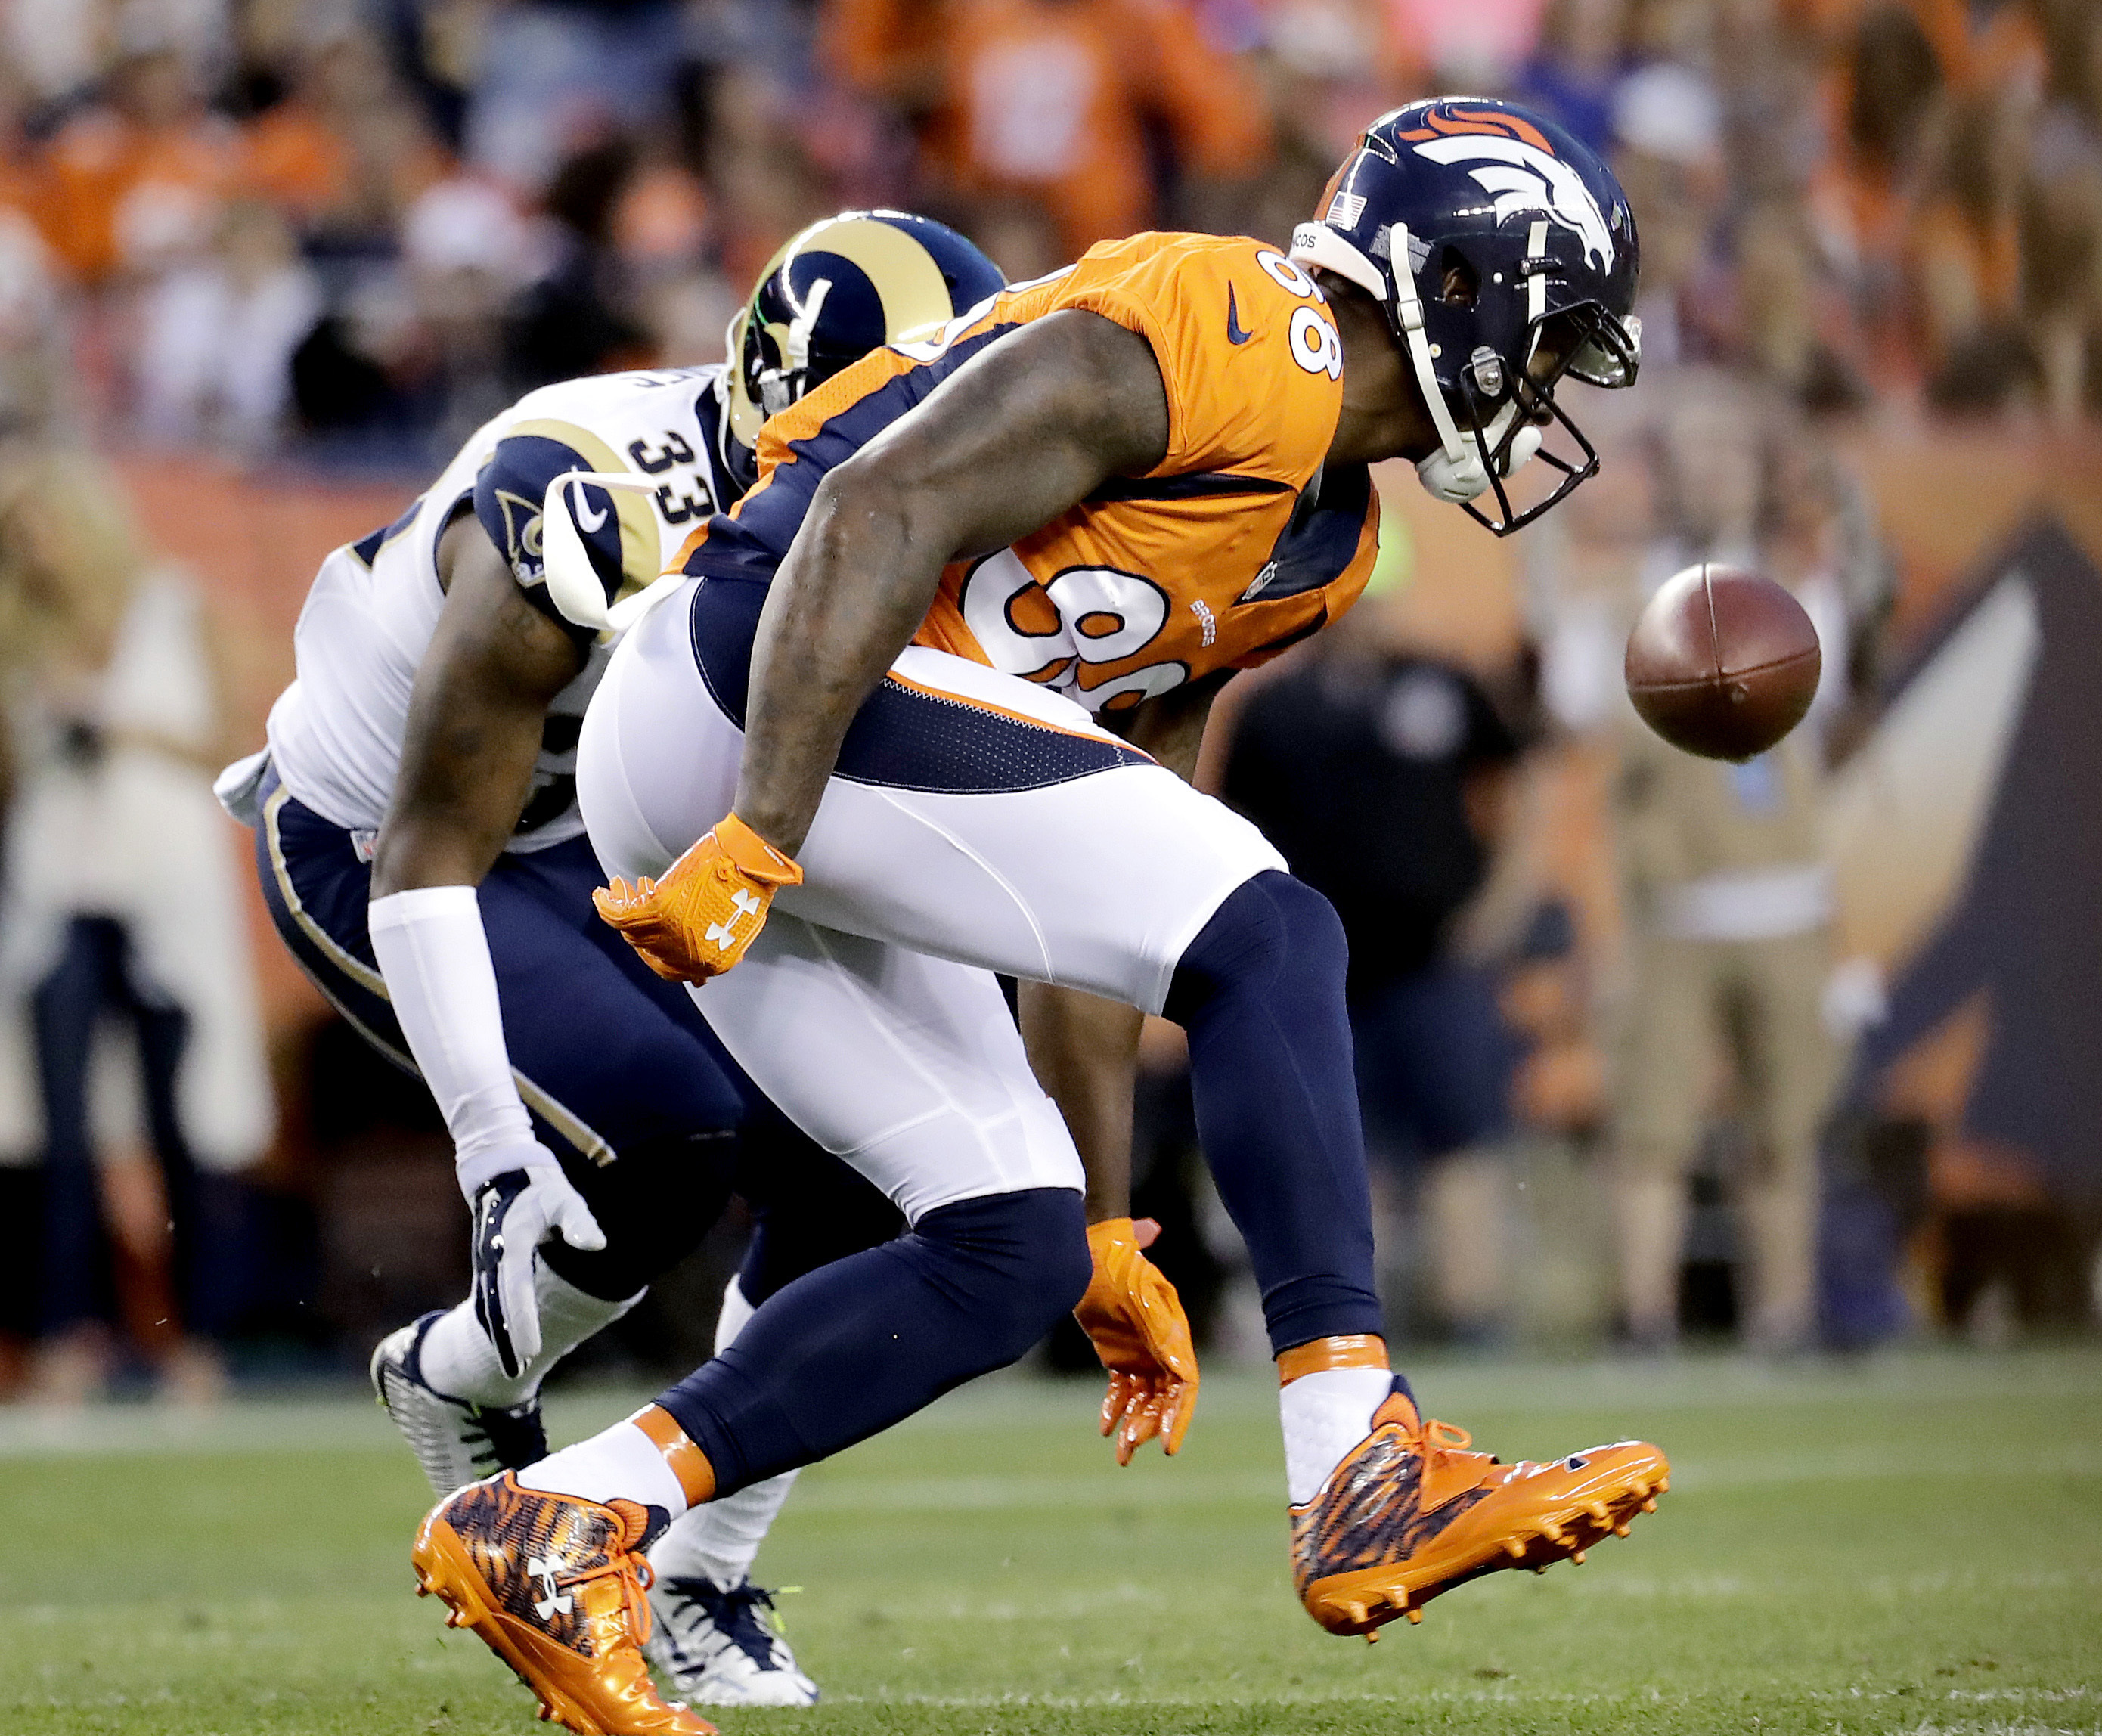 FILE - In this Aug. 28, 2016, file photo, Denver Broncos wide receiver Demaryius Thomas (88) can't make the catch as Los Angeles Rams cornerback E.J. Gaines (33) defends during the first half of an NFL preseason football game in Denver. The Broncos are a